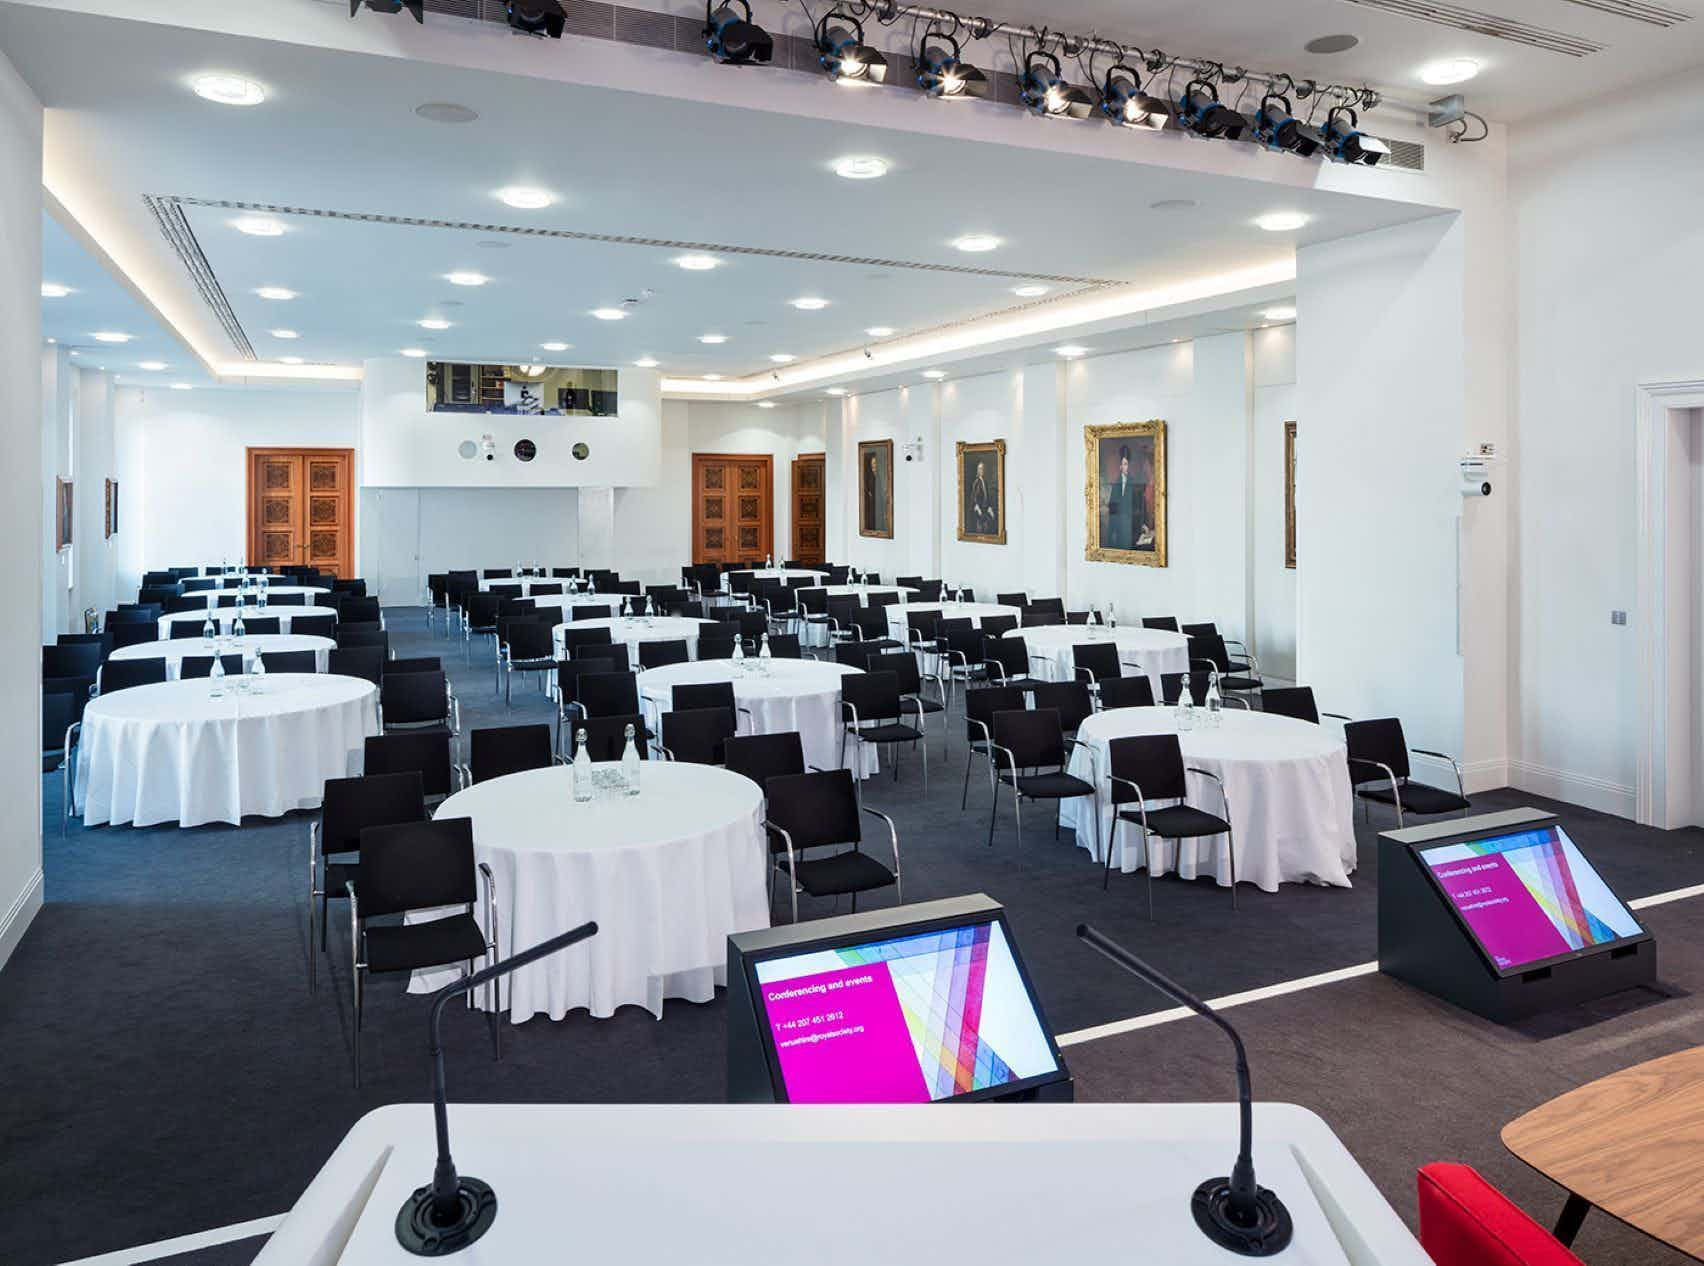 The Wellcome Trust Lecture Hall., The Royal Society